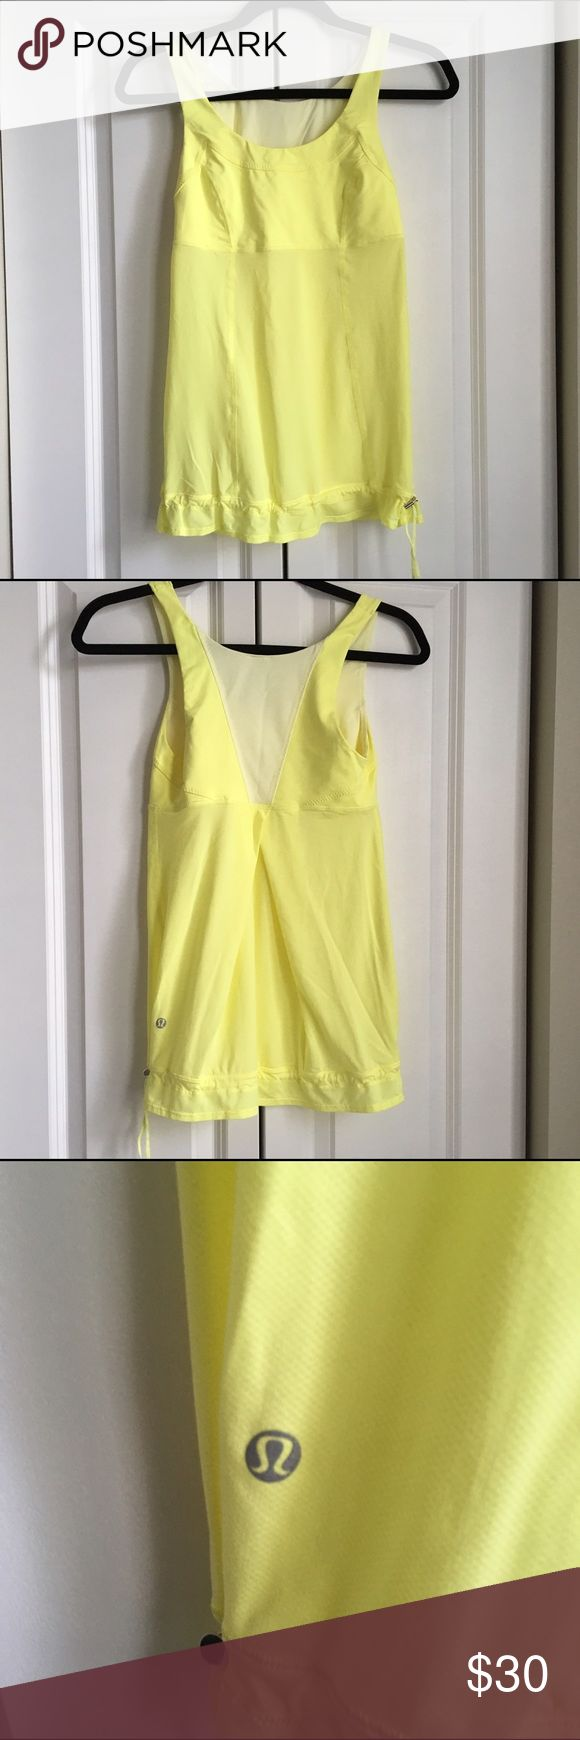 """Lululemon Elevate Tank - Yellow - Size 4 Women's Lululemon Yellow Elevate Tank!  Great for any sport or workout! Size 4 Built in bra. Mesh with drawstring bottom. Vented at the back  Lightweight. In excellent used condition. From a smoke free home. Measures 13"""" across and 26.5 in length from the top of the shoulder. lululemon athletica Tops Tank Tops"""